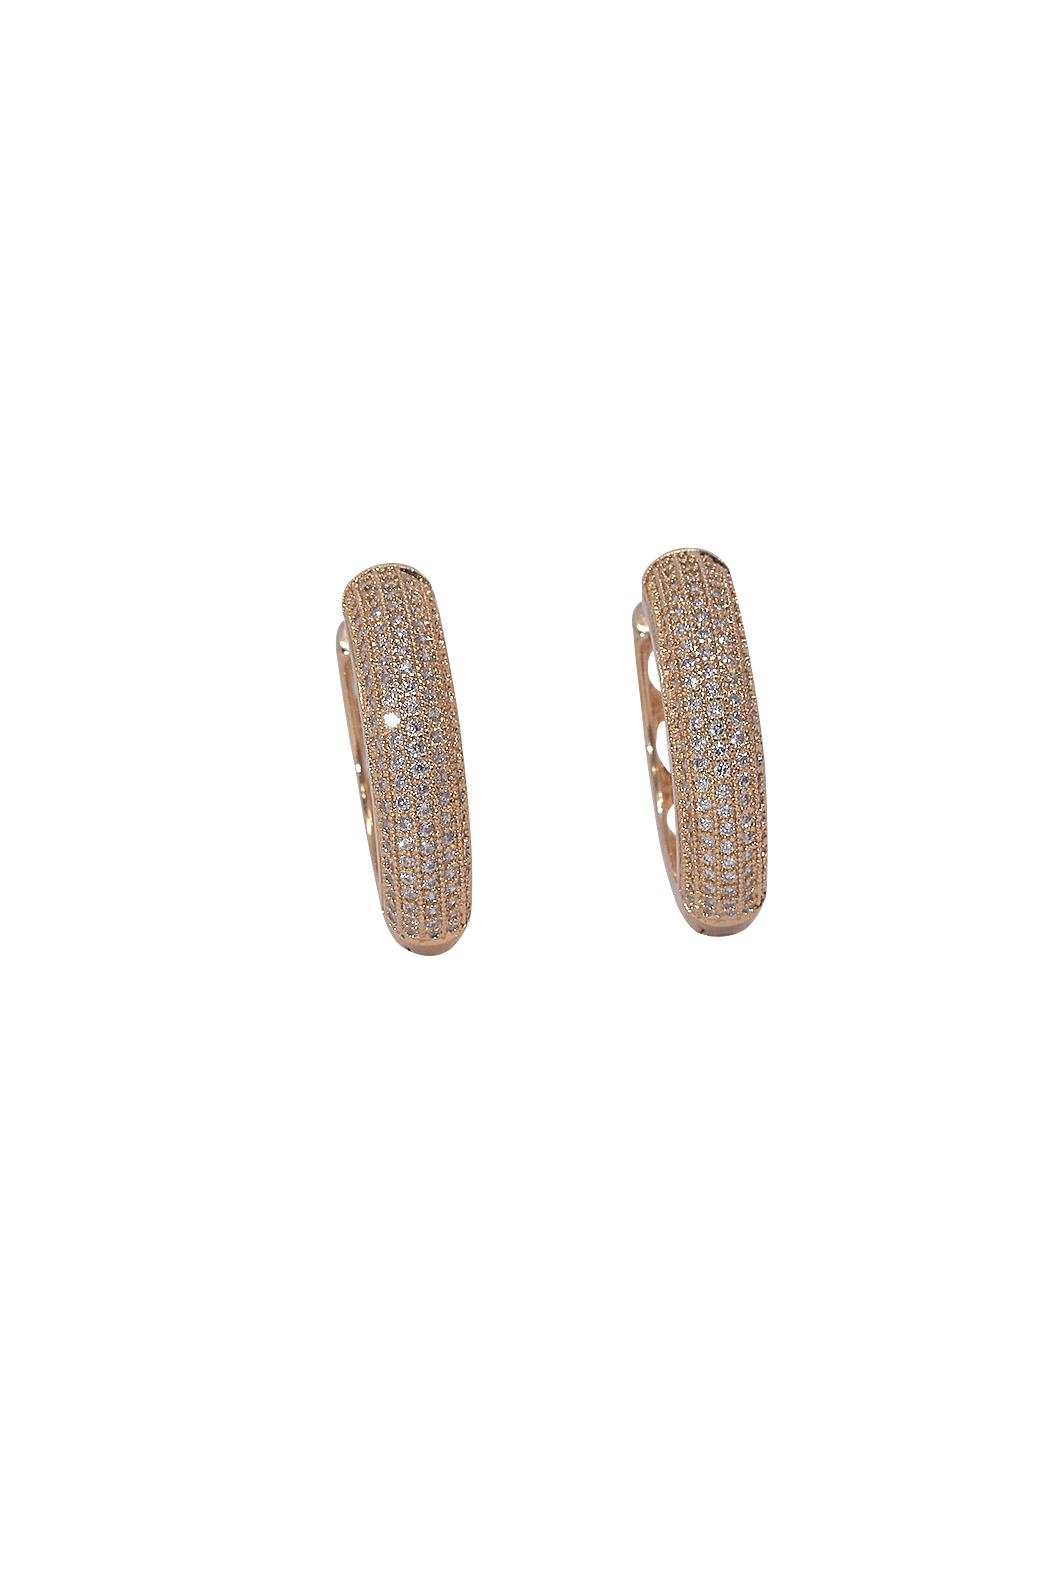 TINK TINK Circular Gold Plated Earrings - Front Cropped Image